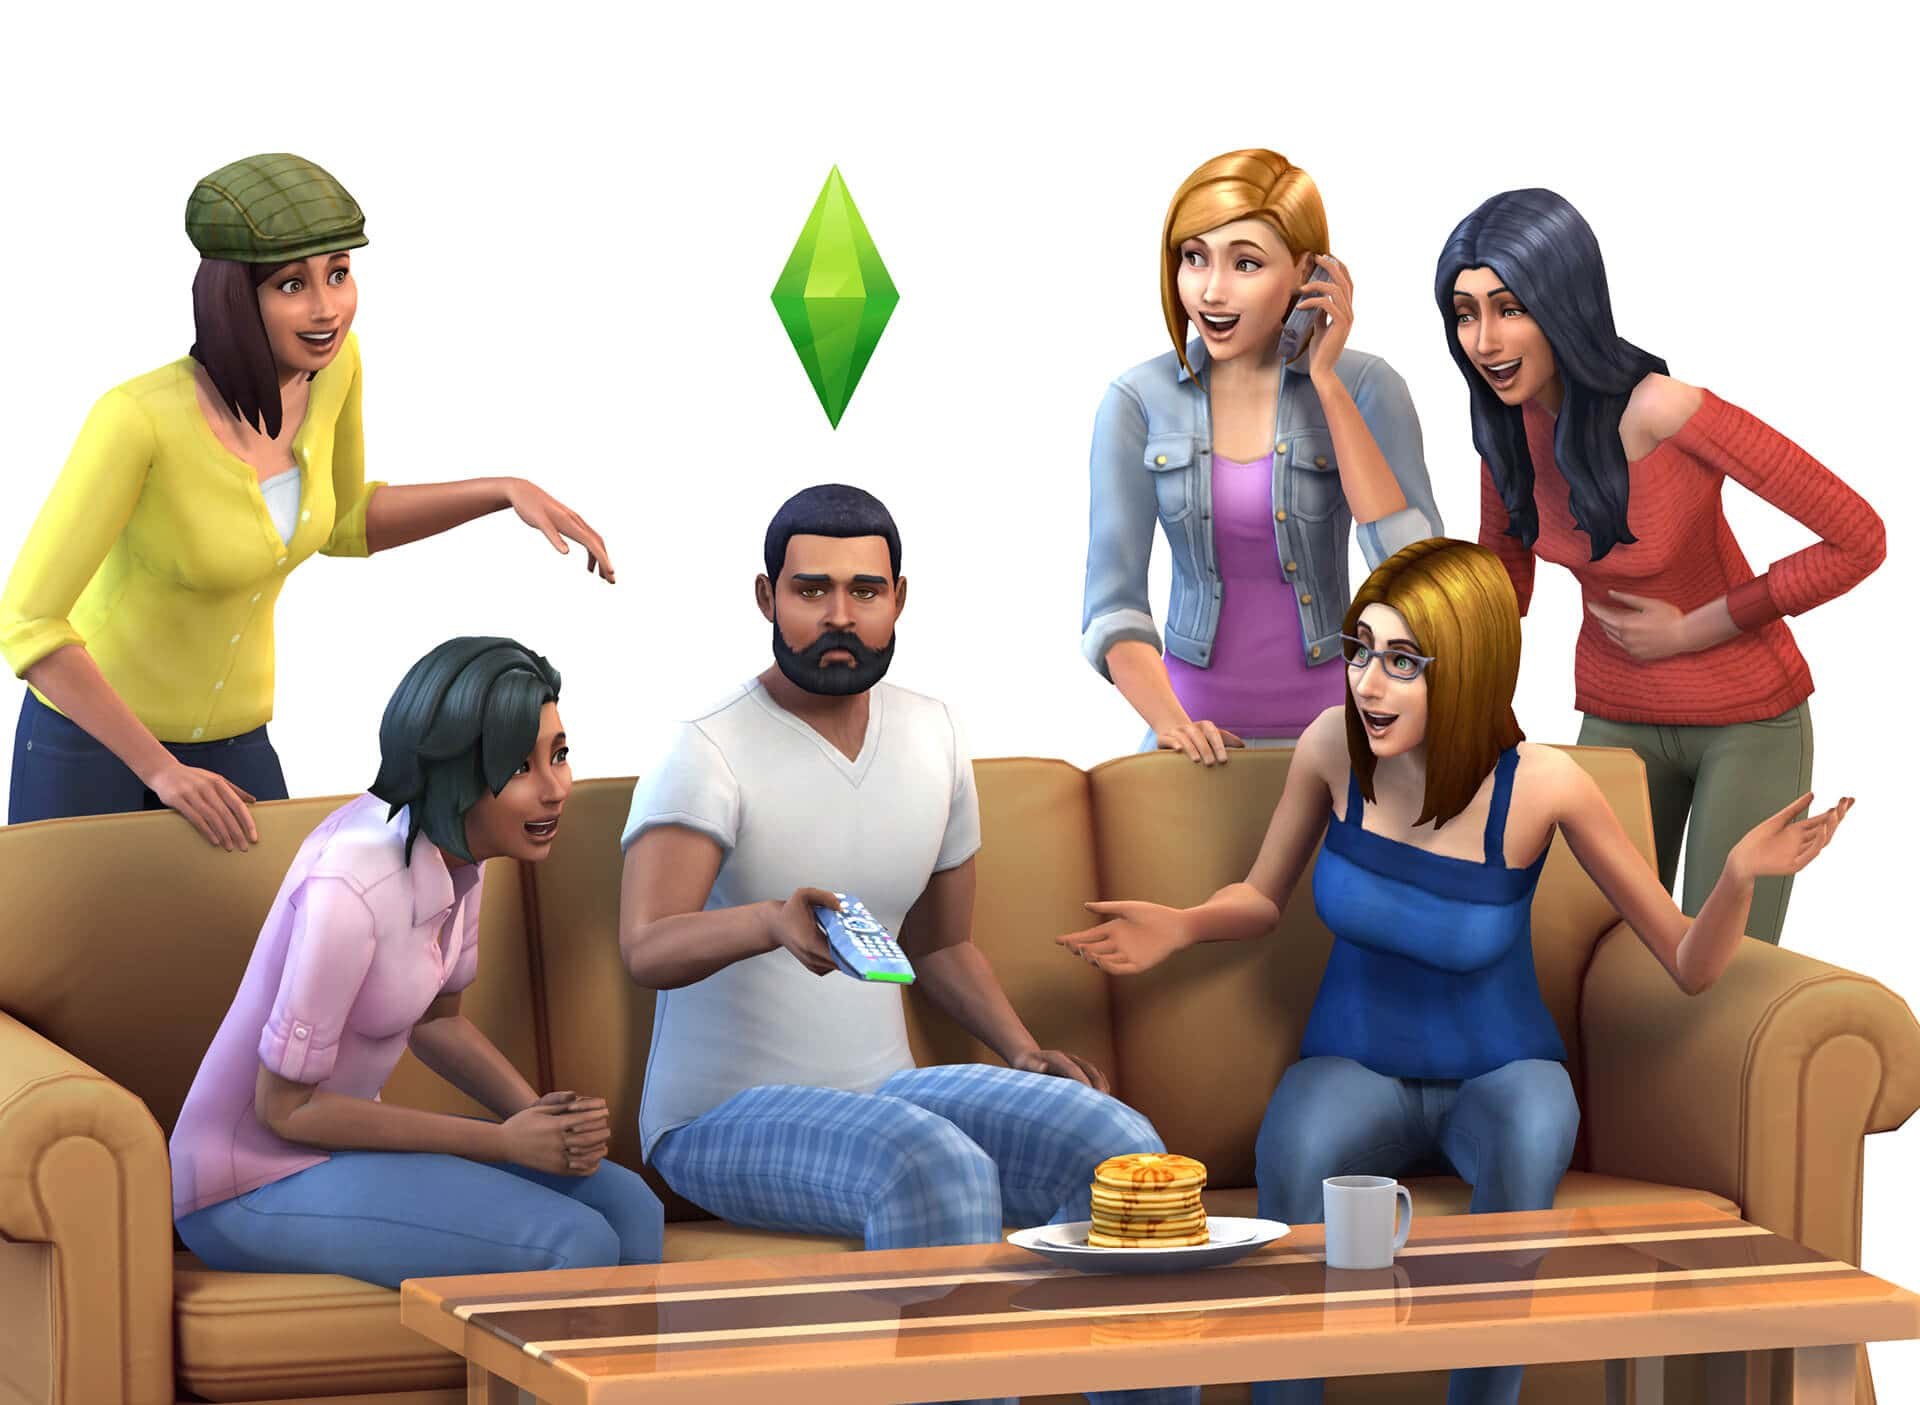 The Sims 5 Release Date